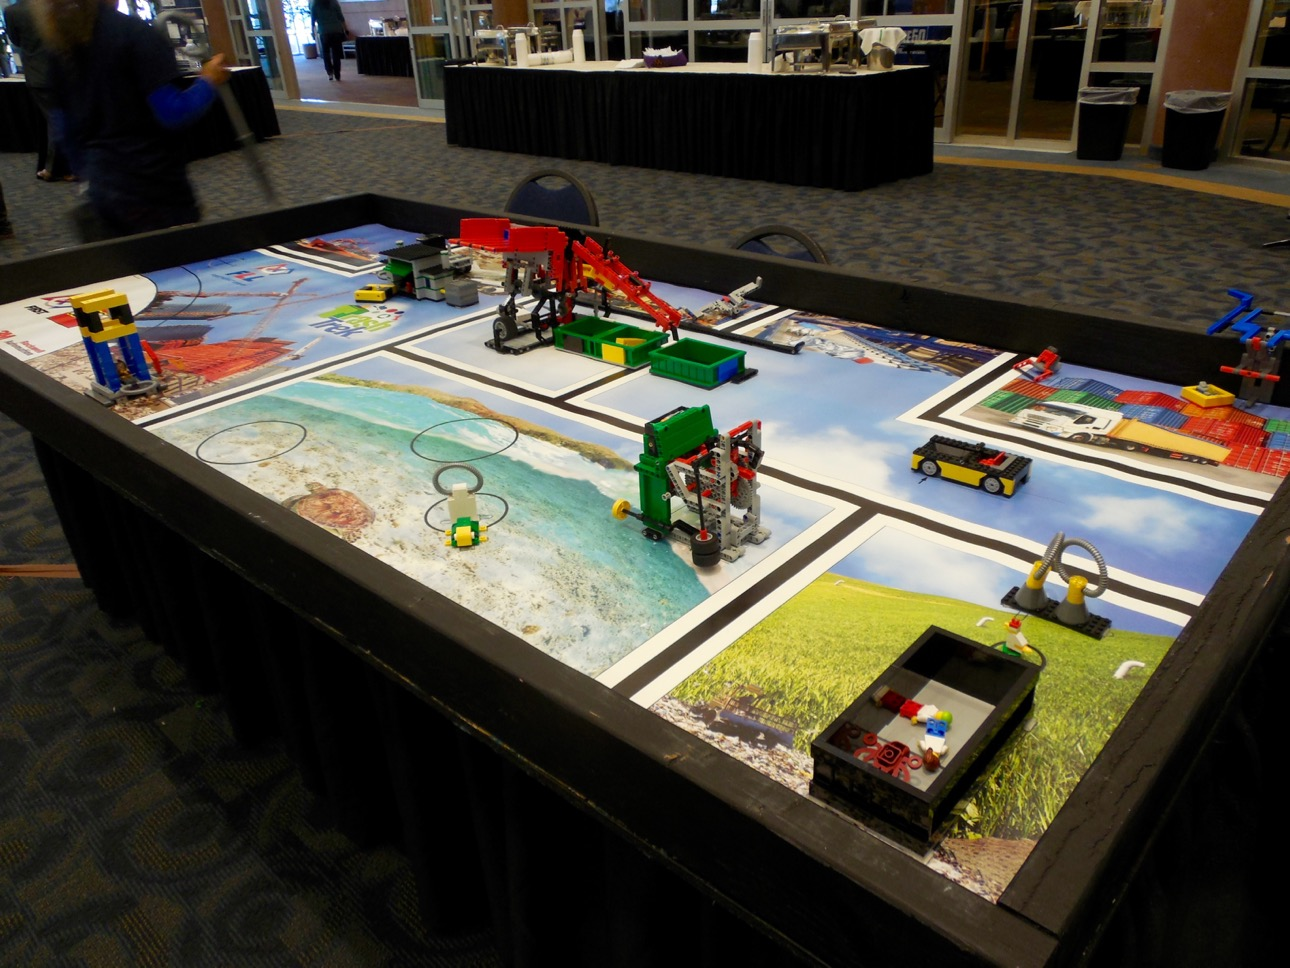 """Robotic Legos are one way kids are learning about computer science. Display at the """"What's Up Down South Economic Summit,"""" Dixie Center St. George, St. George, Utah, Jan. 14, 2016 